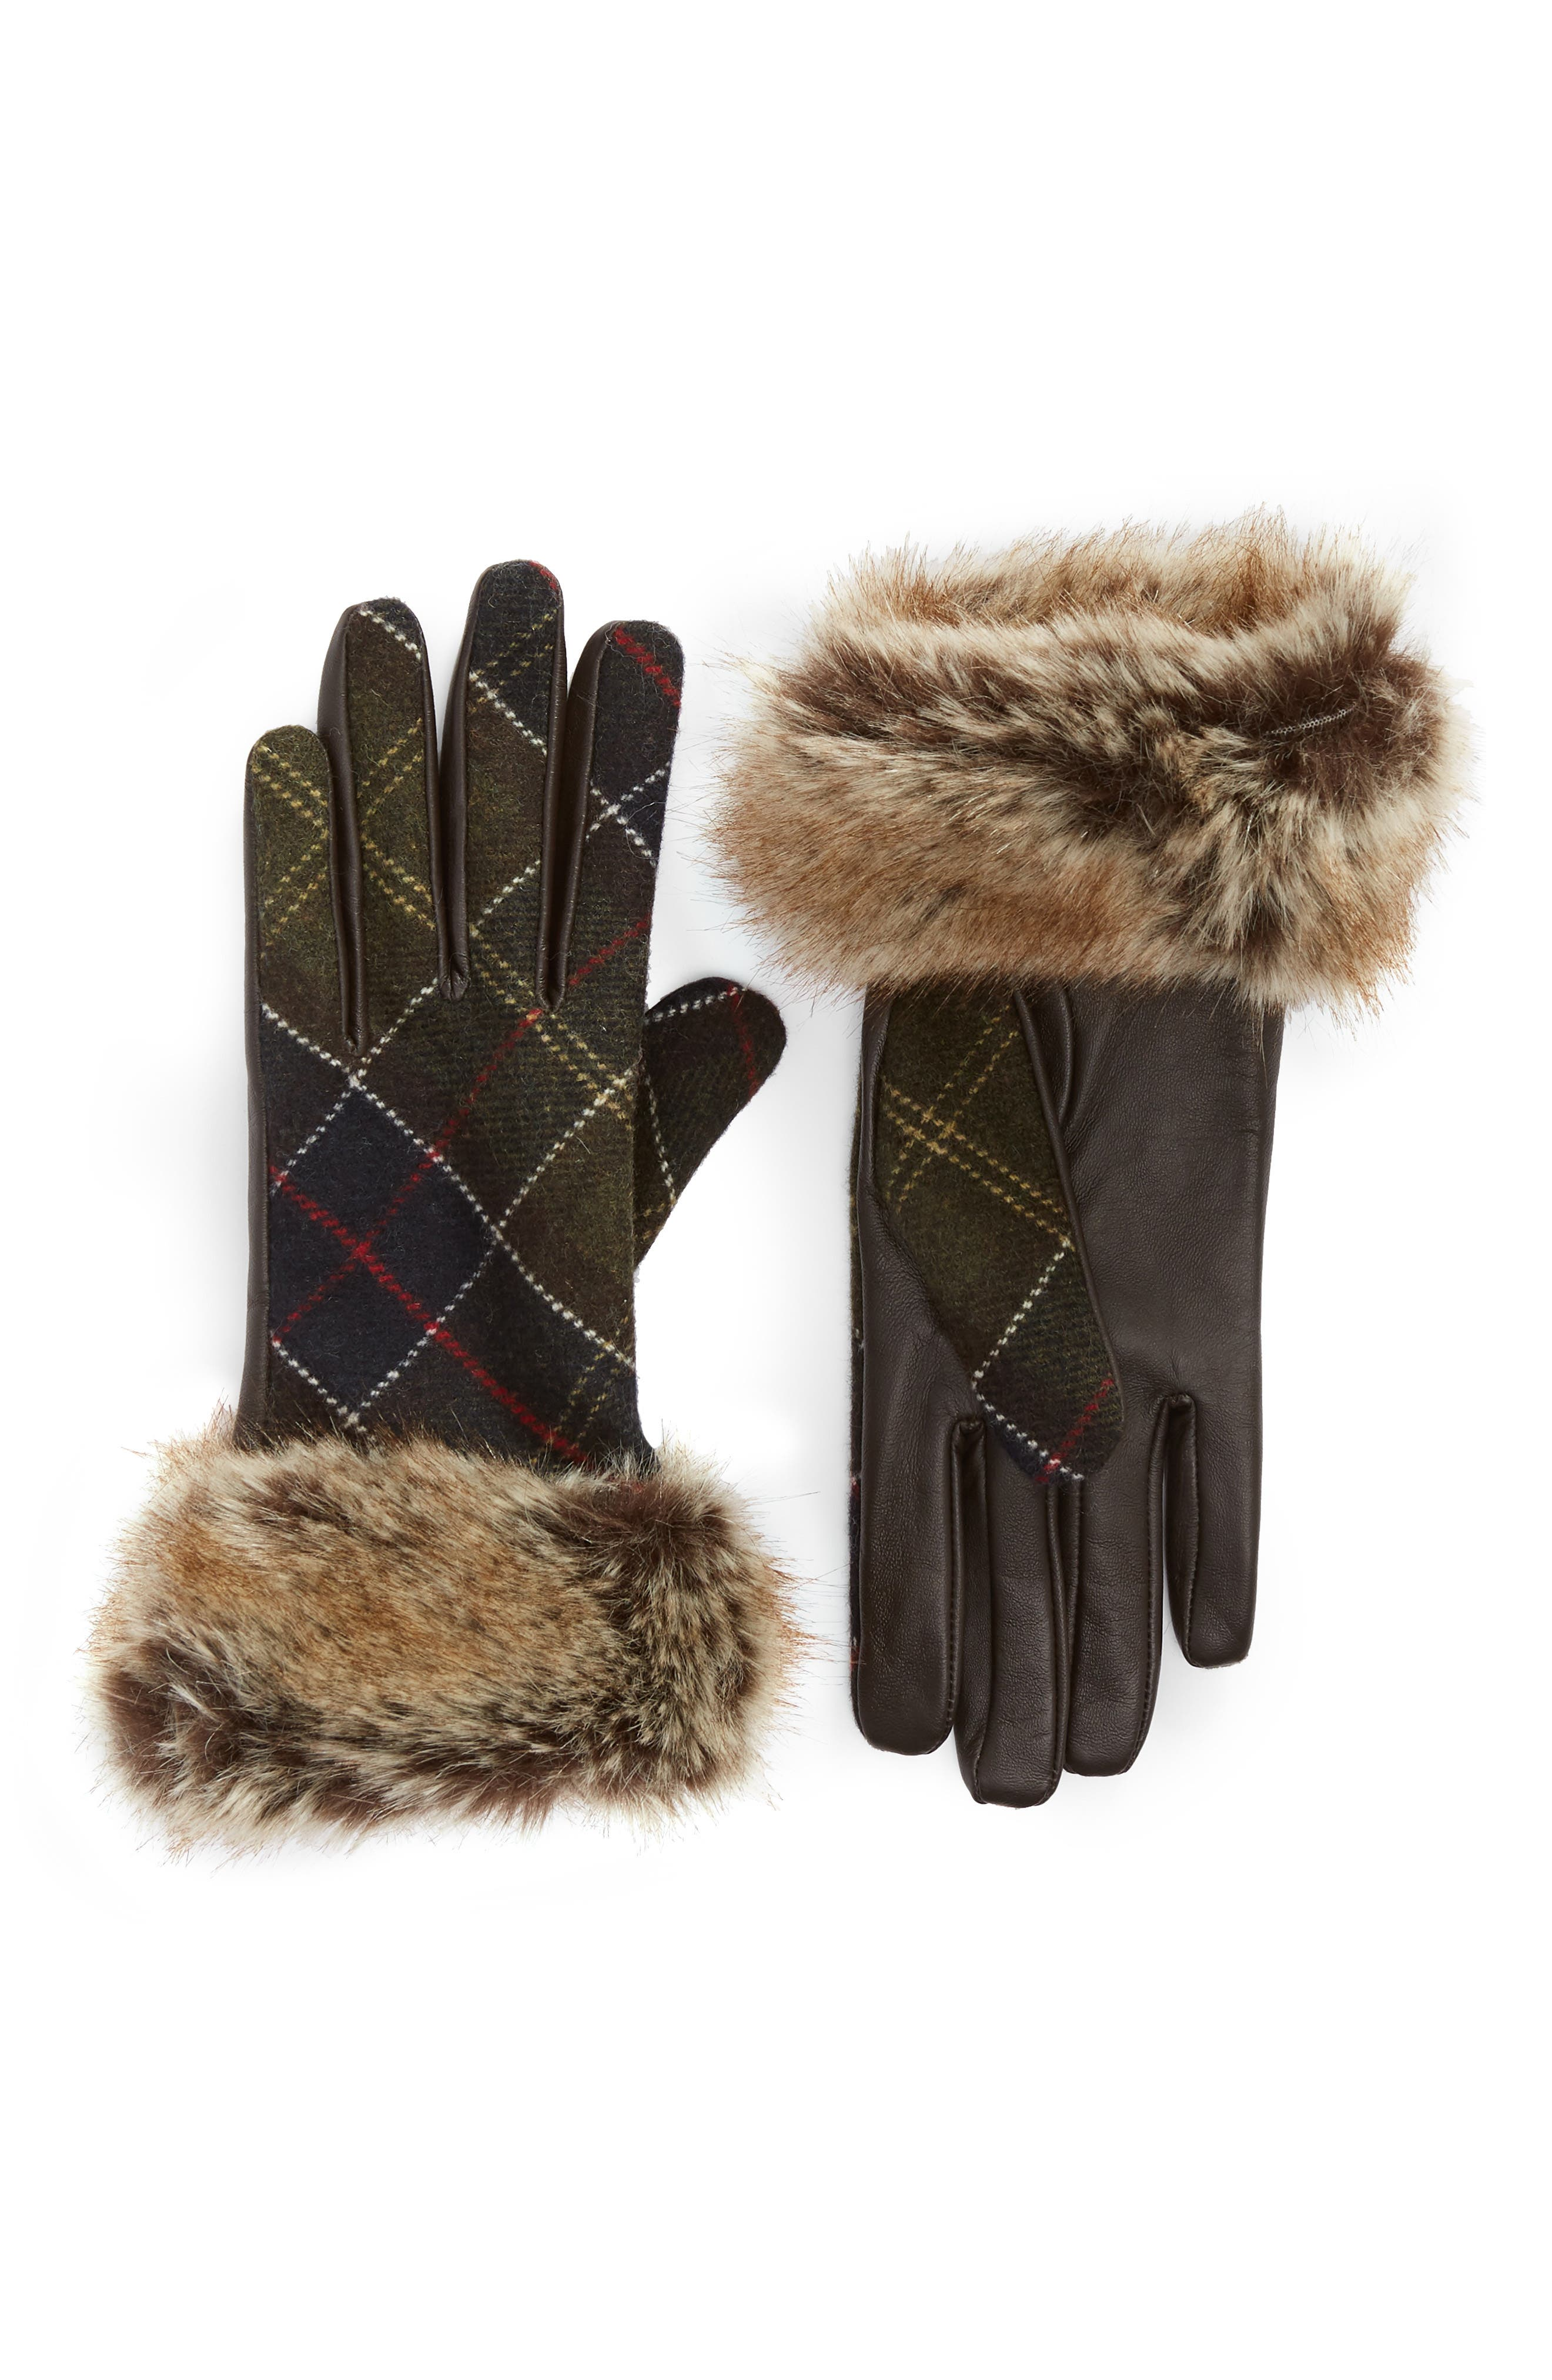 Linton Leather & Wool Gloves,                             Main thumbnail 1, color,                             230